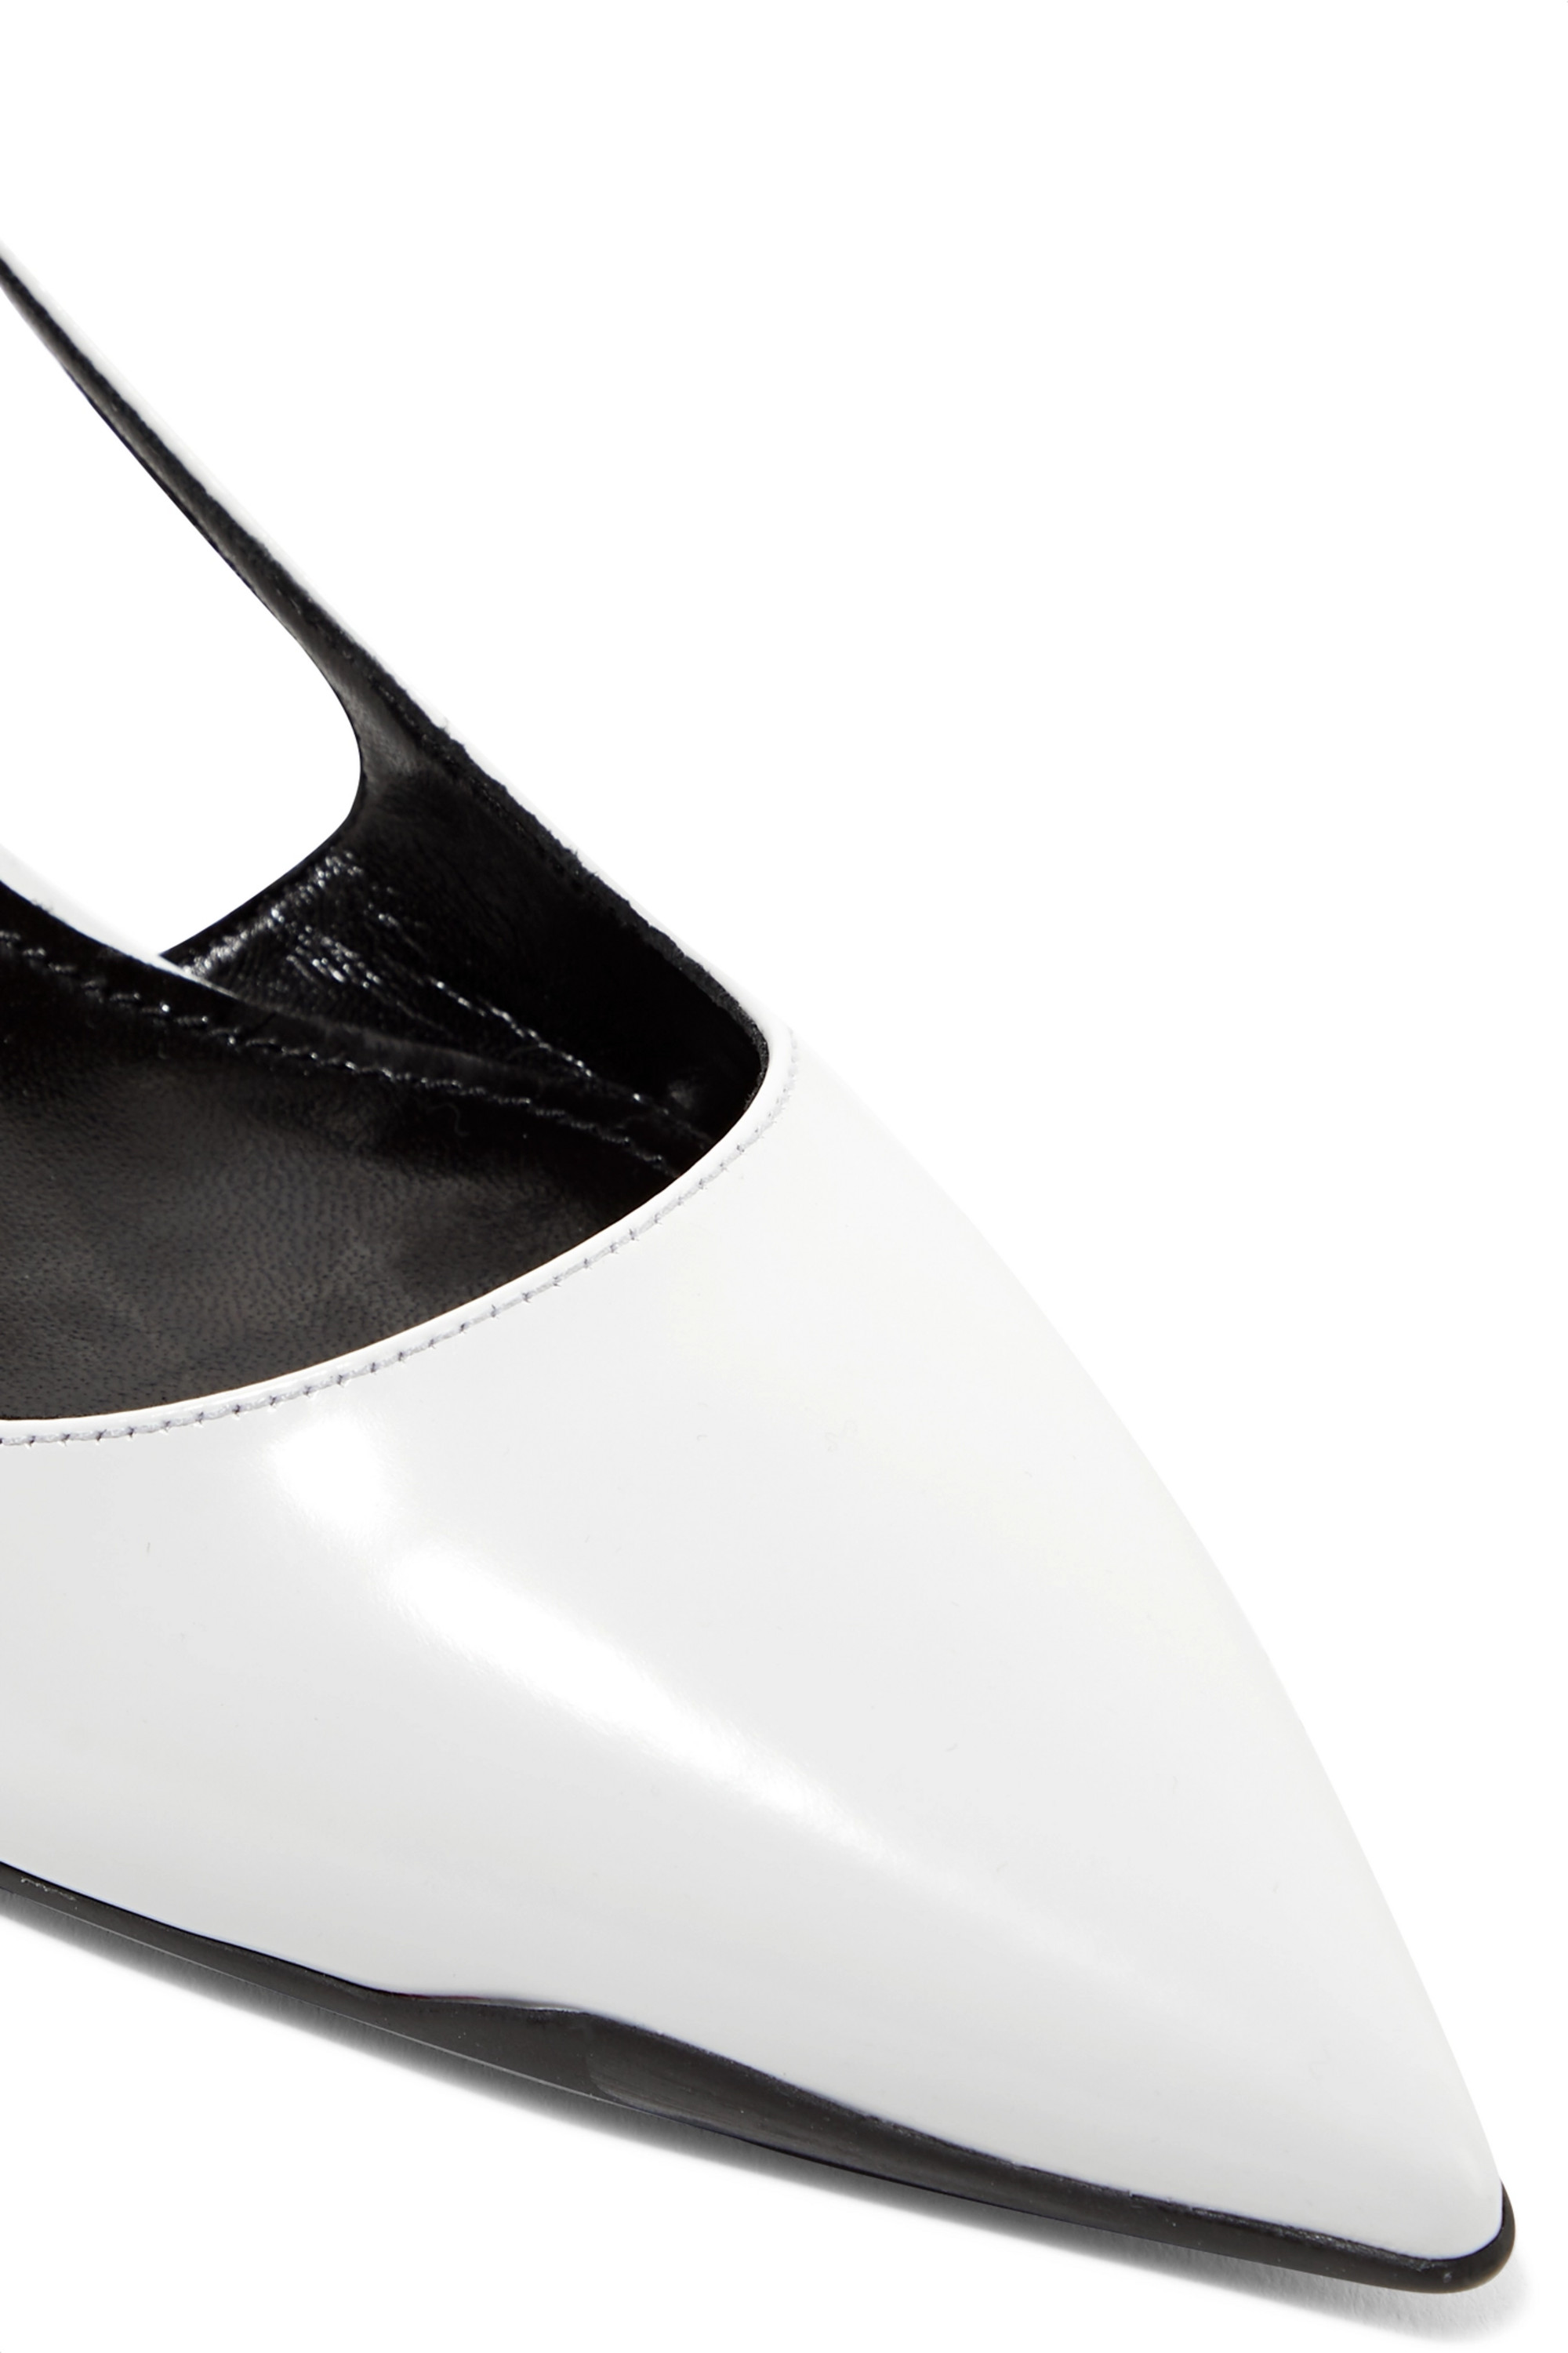 Prada 55 leather slingback pumps